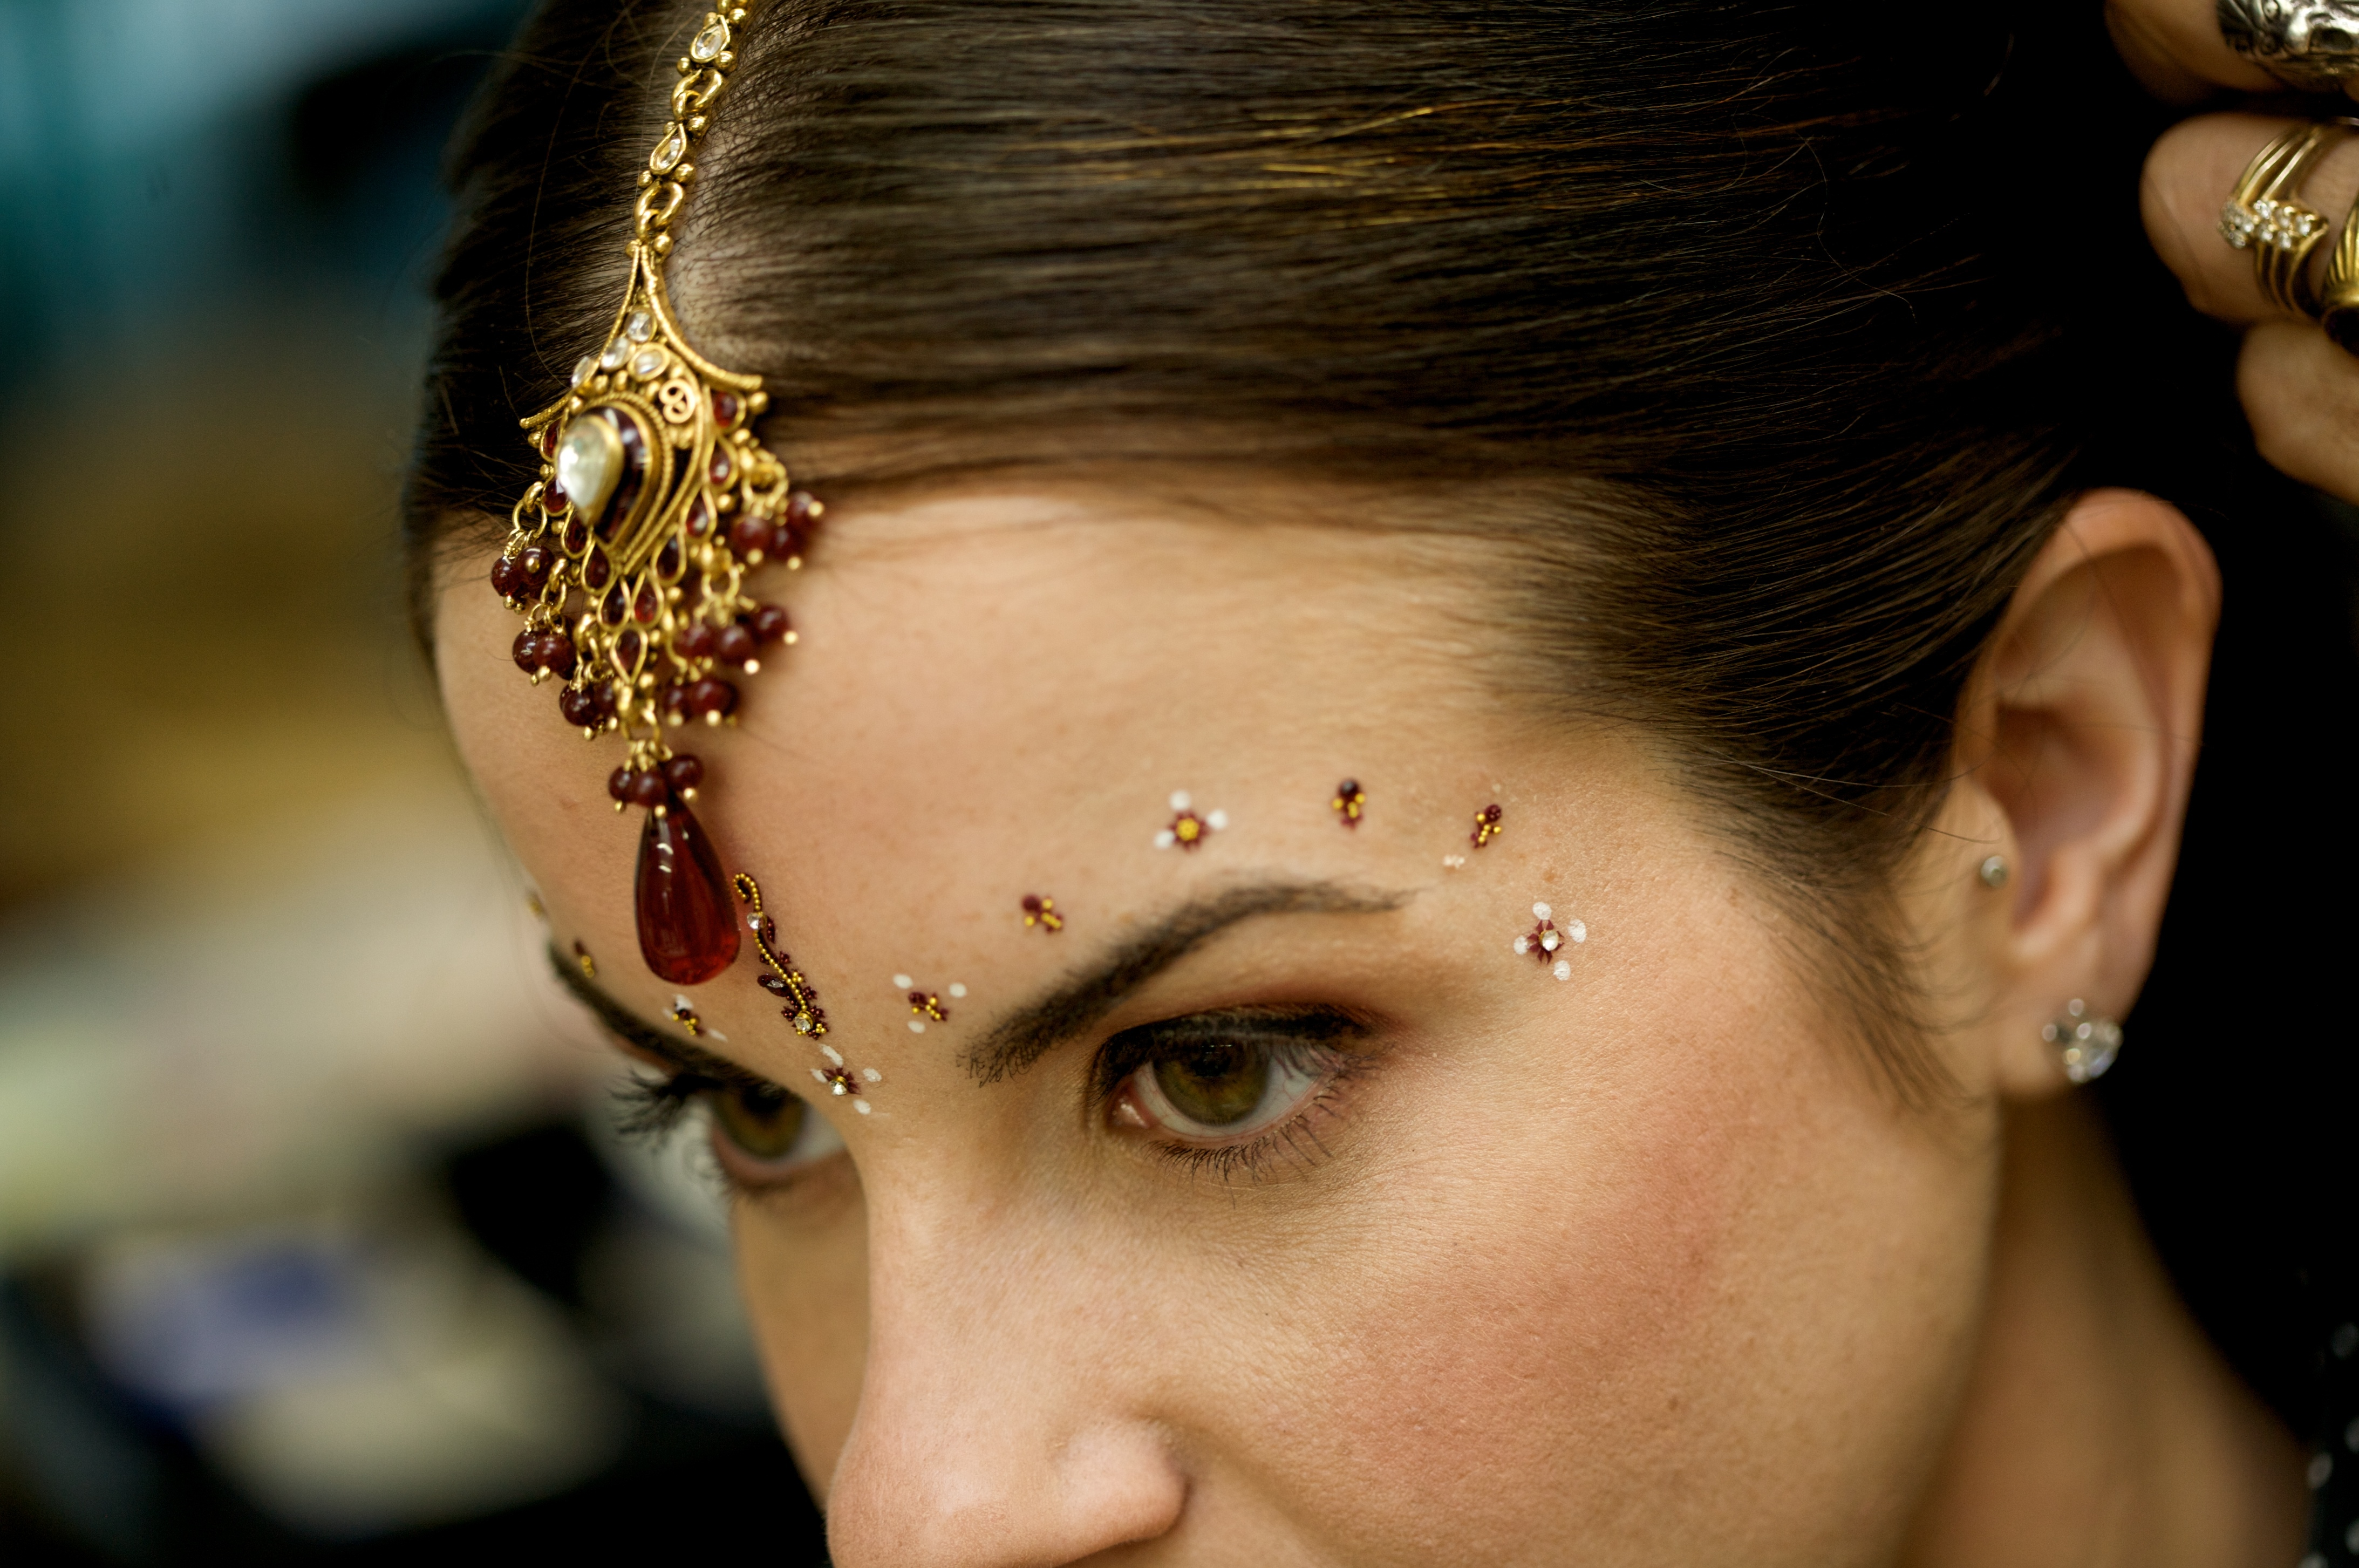 Beauty, Jewelry, red, gold, Makeup, Hair, Tealight weddings events